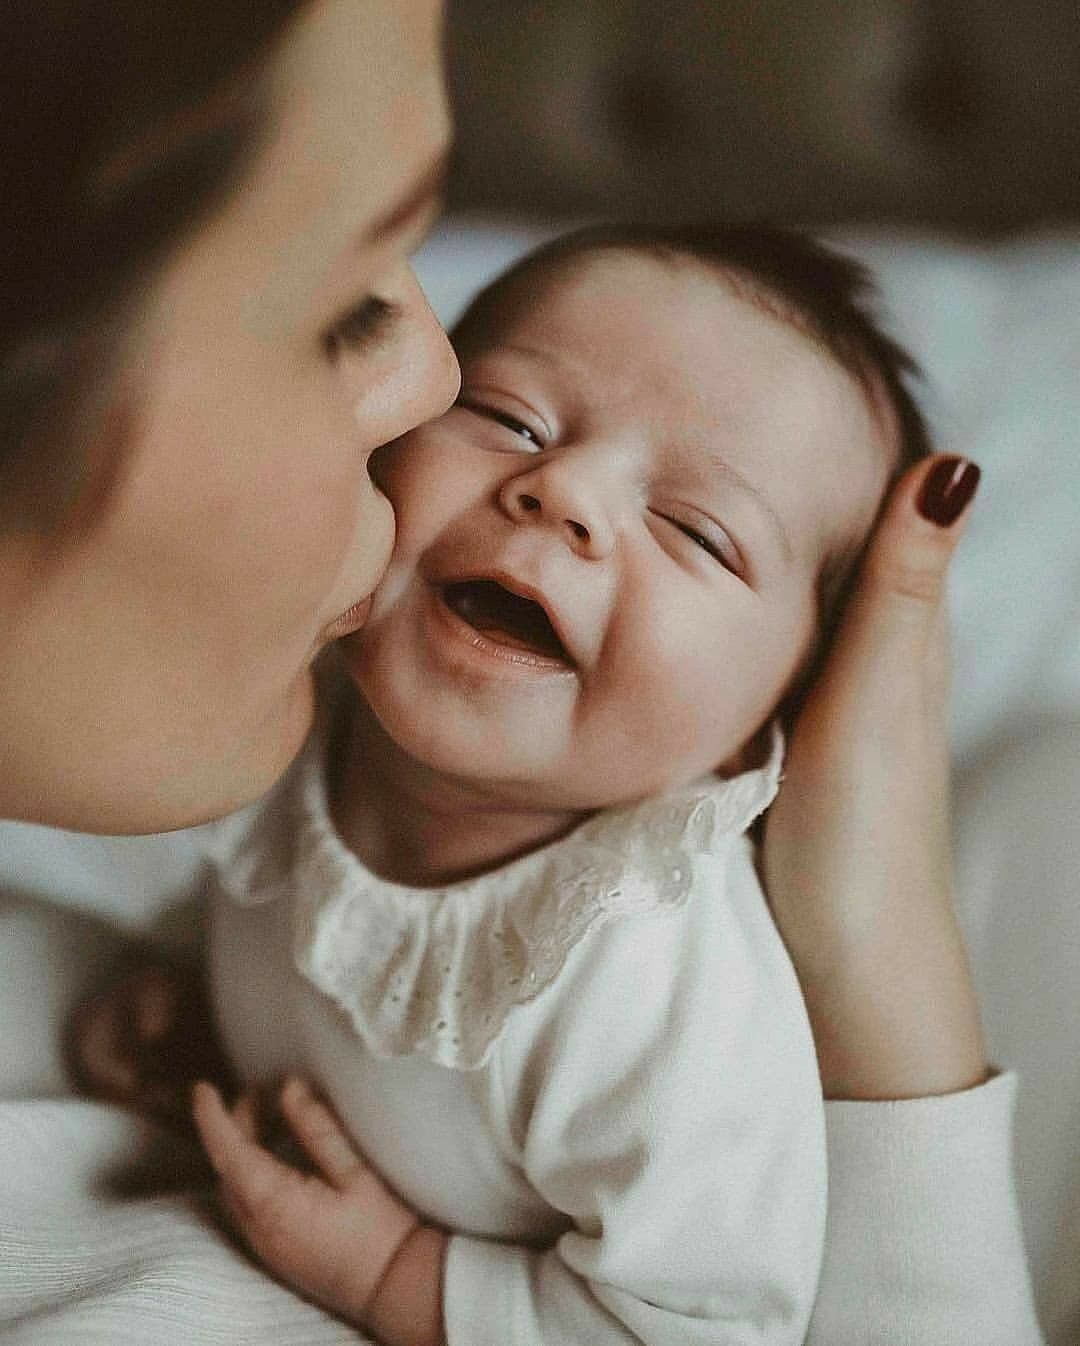 30 Stunning Mom And Baby Photo Shoot Ideas To Try At Home